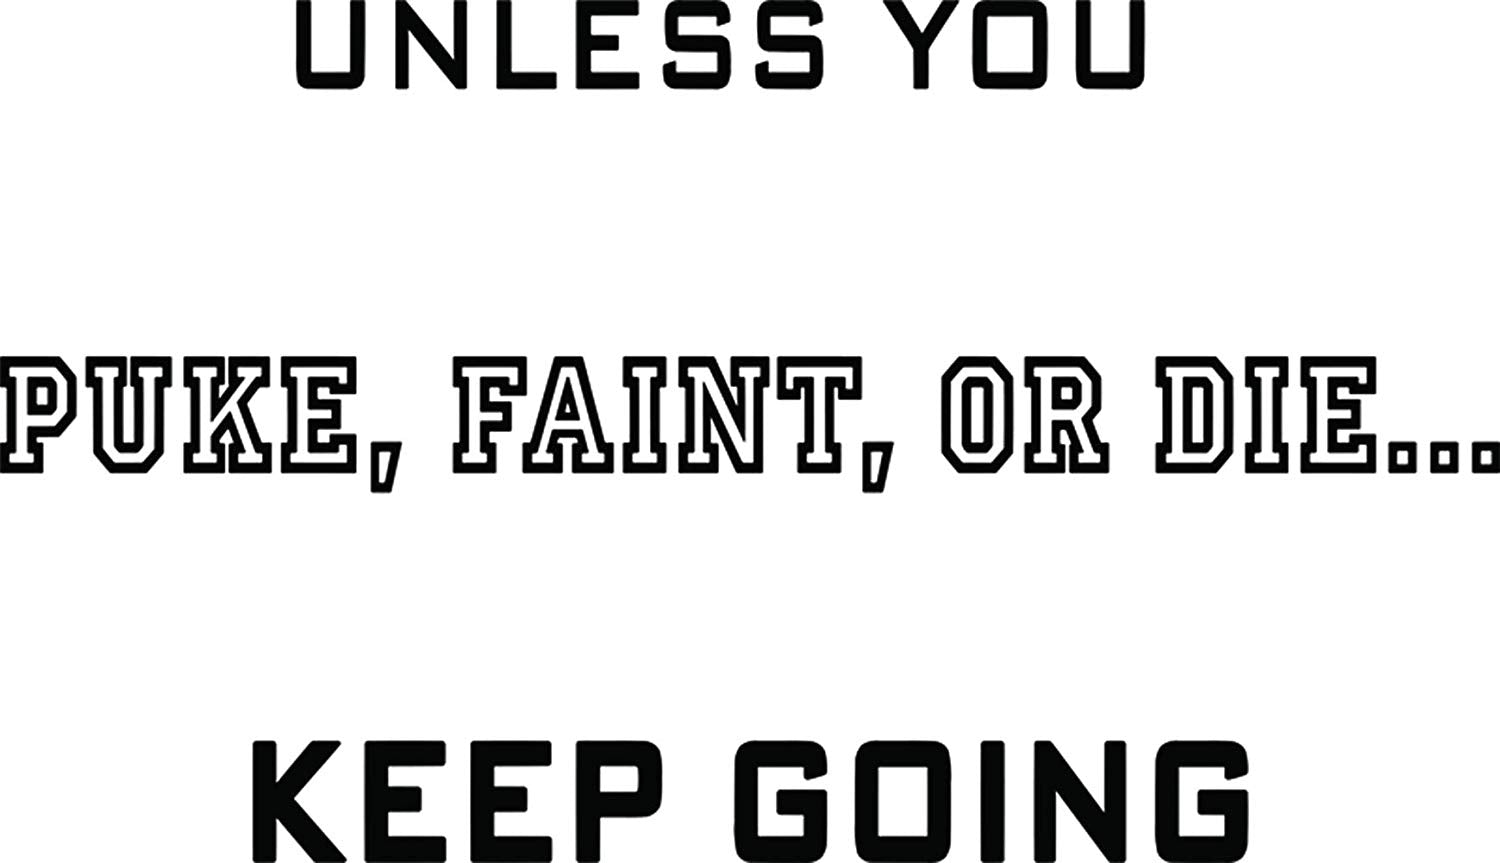 VWAQ Unless You Puke Faint Or Die Keep Going Quote Inspirational Fitness Wall Decals - VWAQ Vinyl Wall Art Quotes and Prints